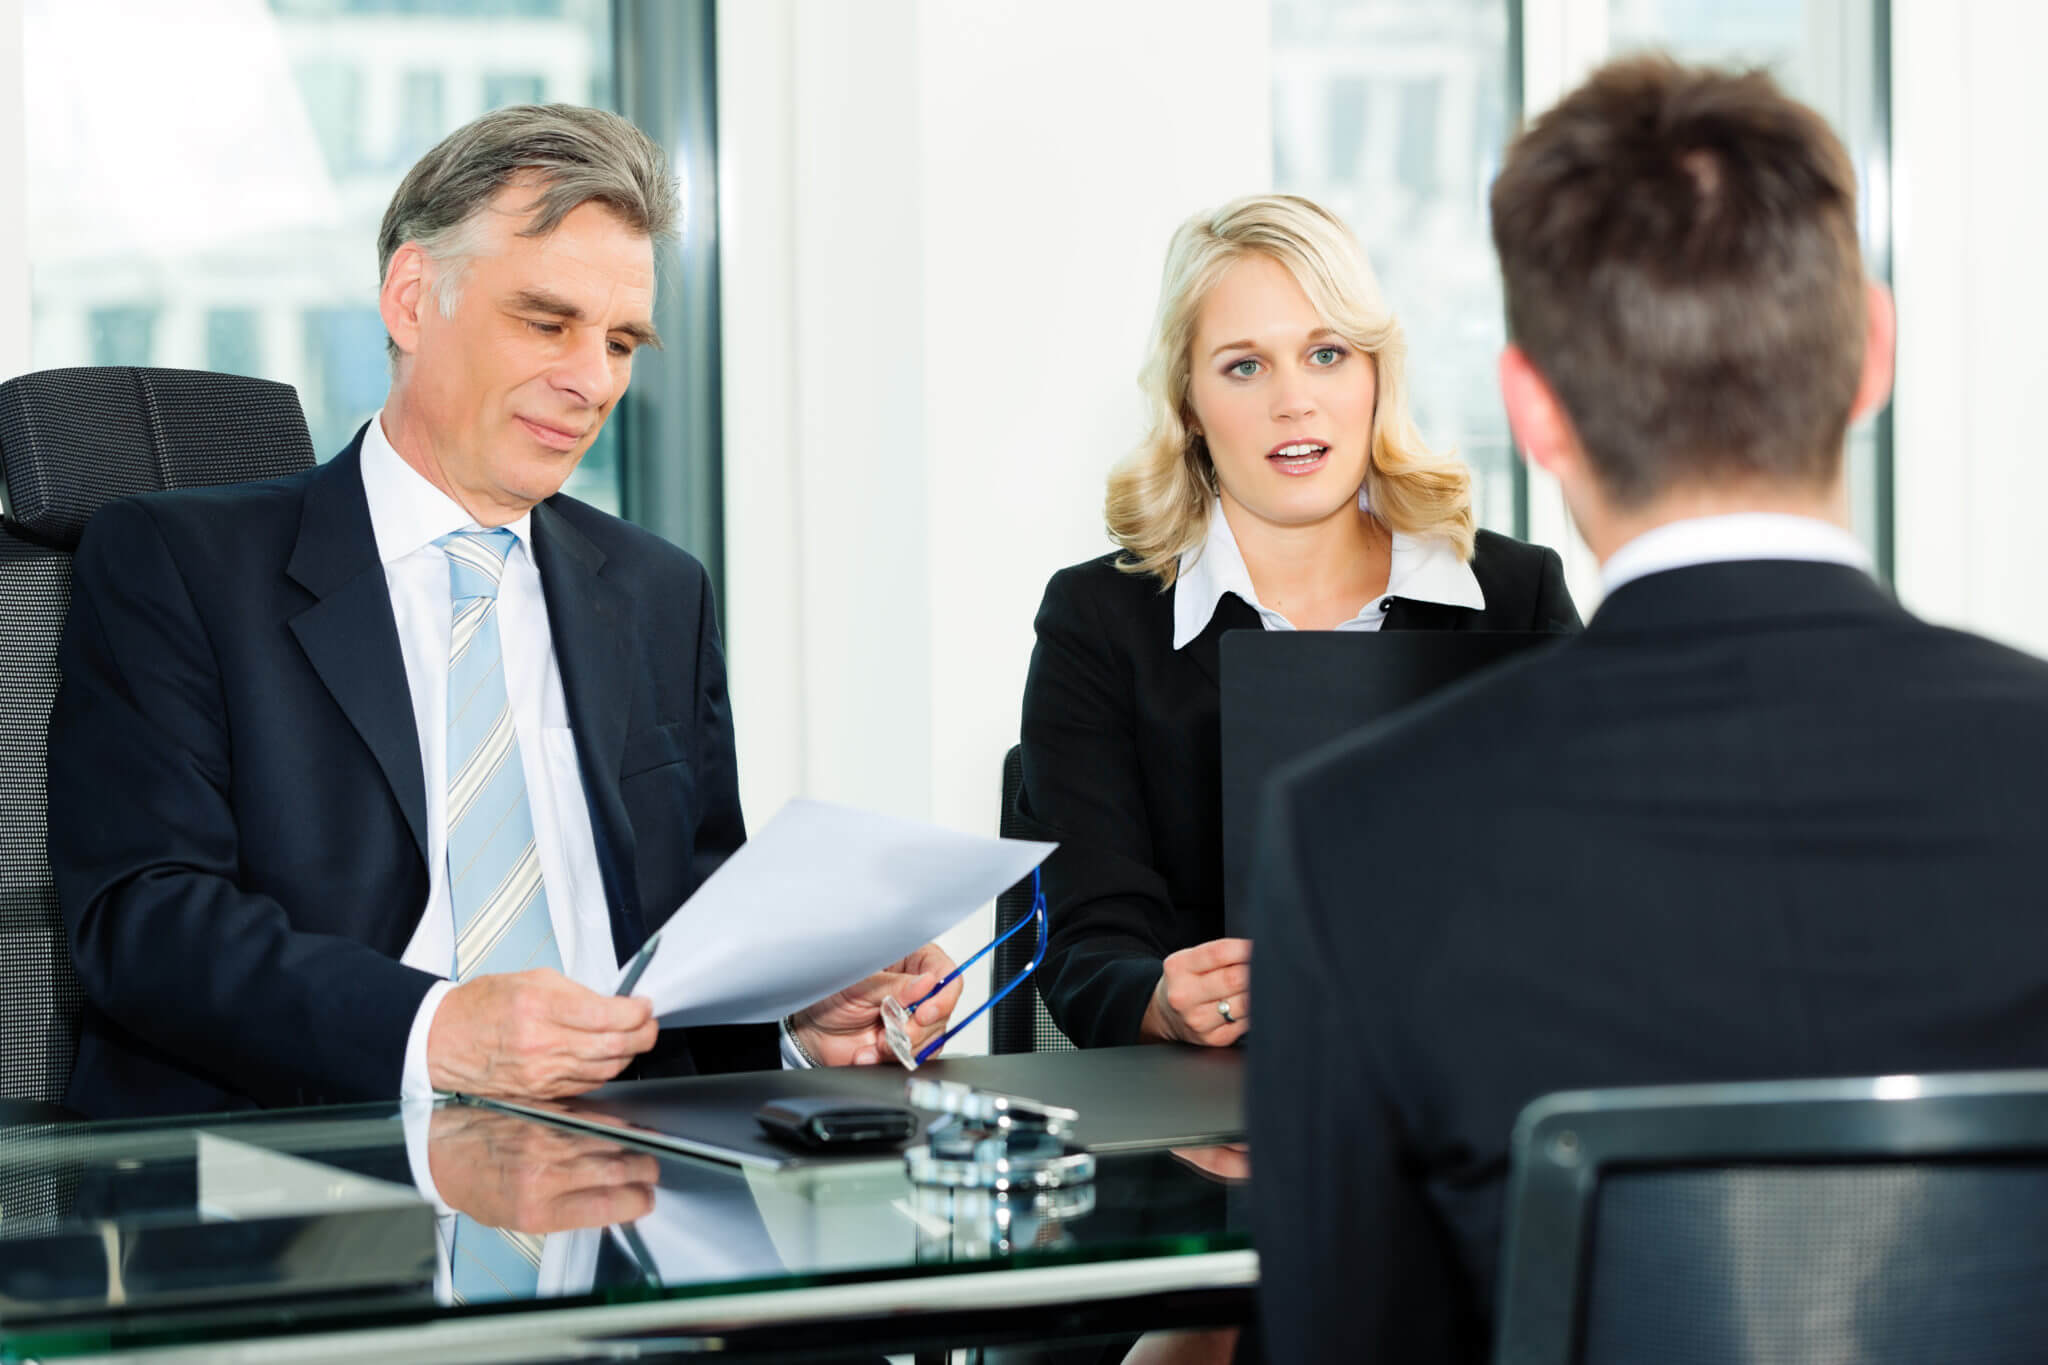 interview questions answers